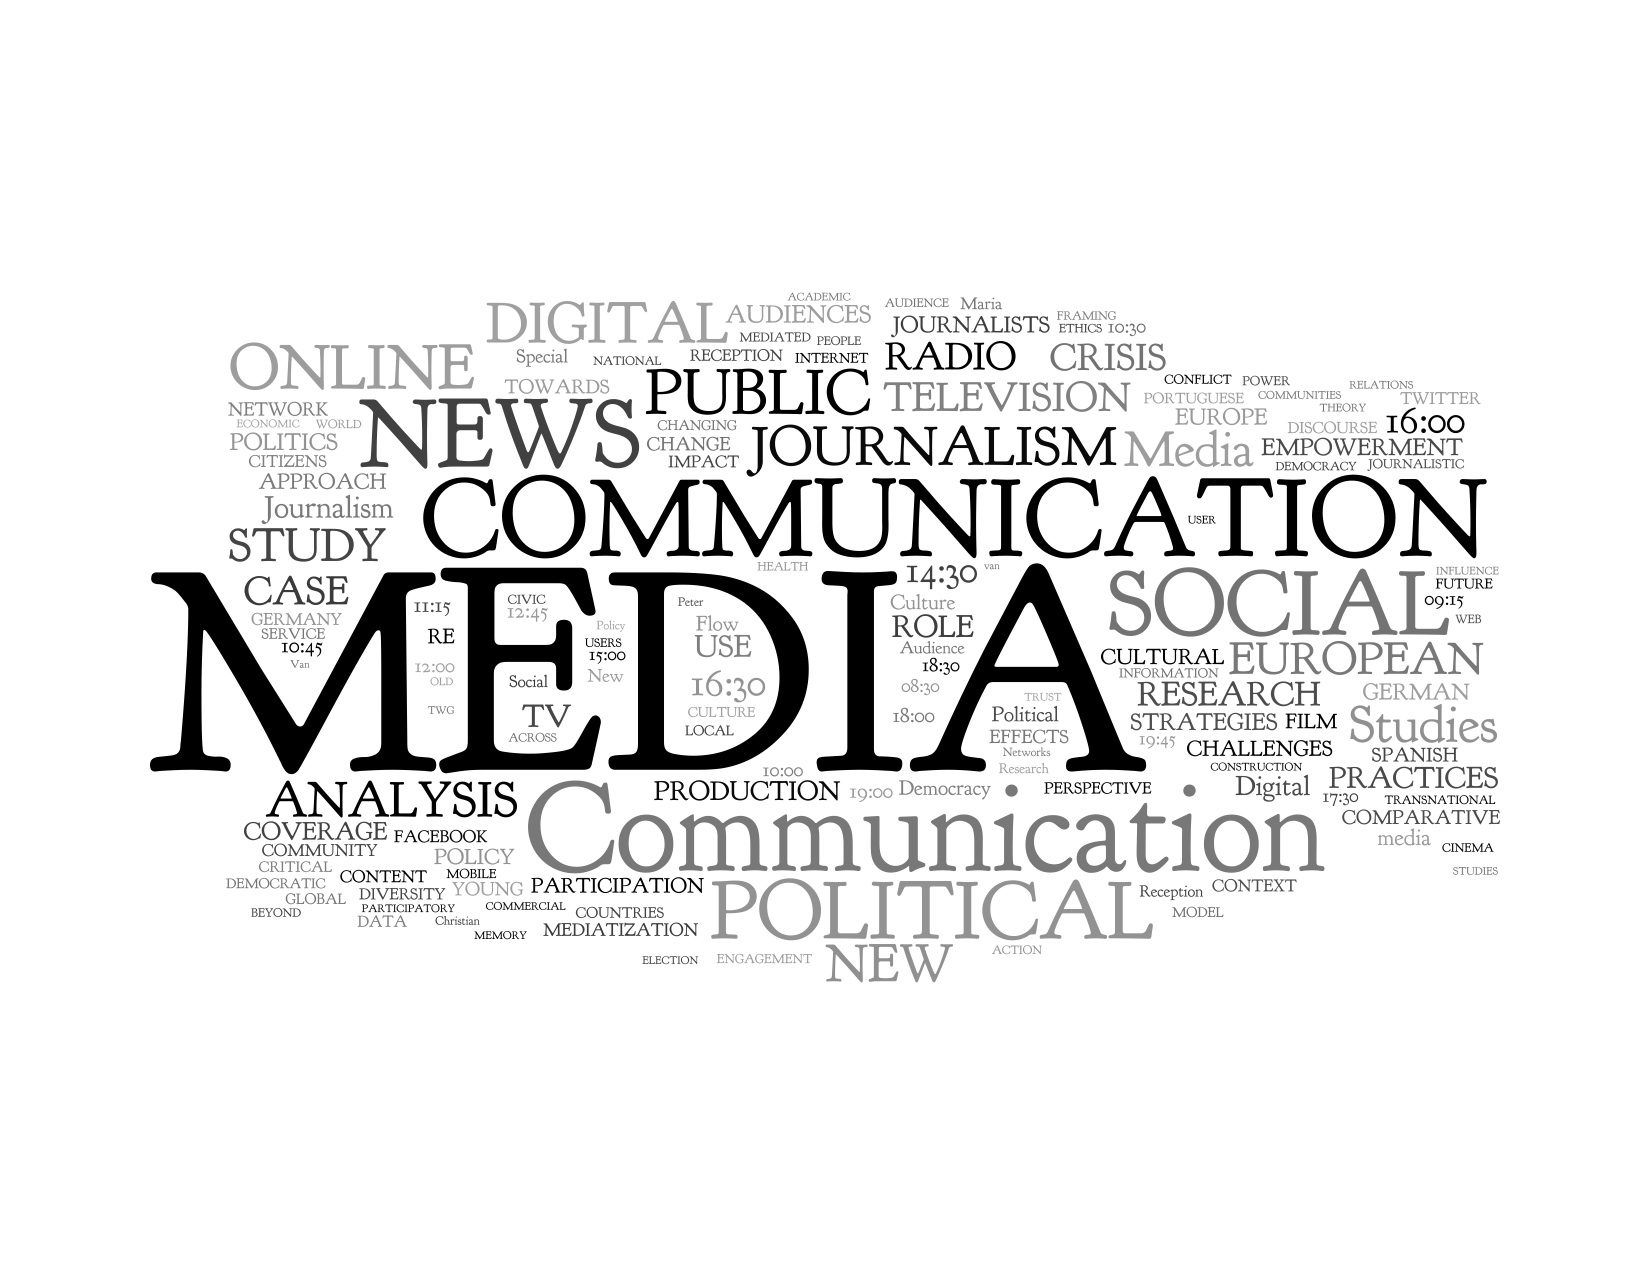 The mass media, including TV, radio and newspapers, have